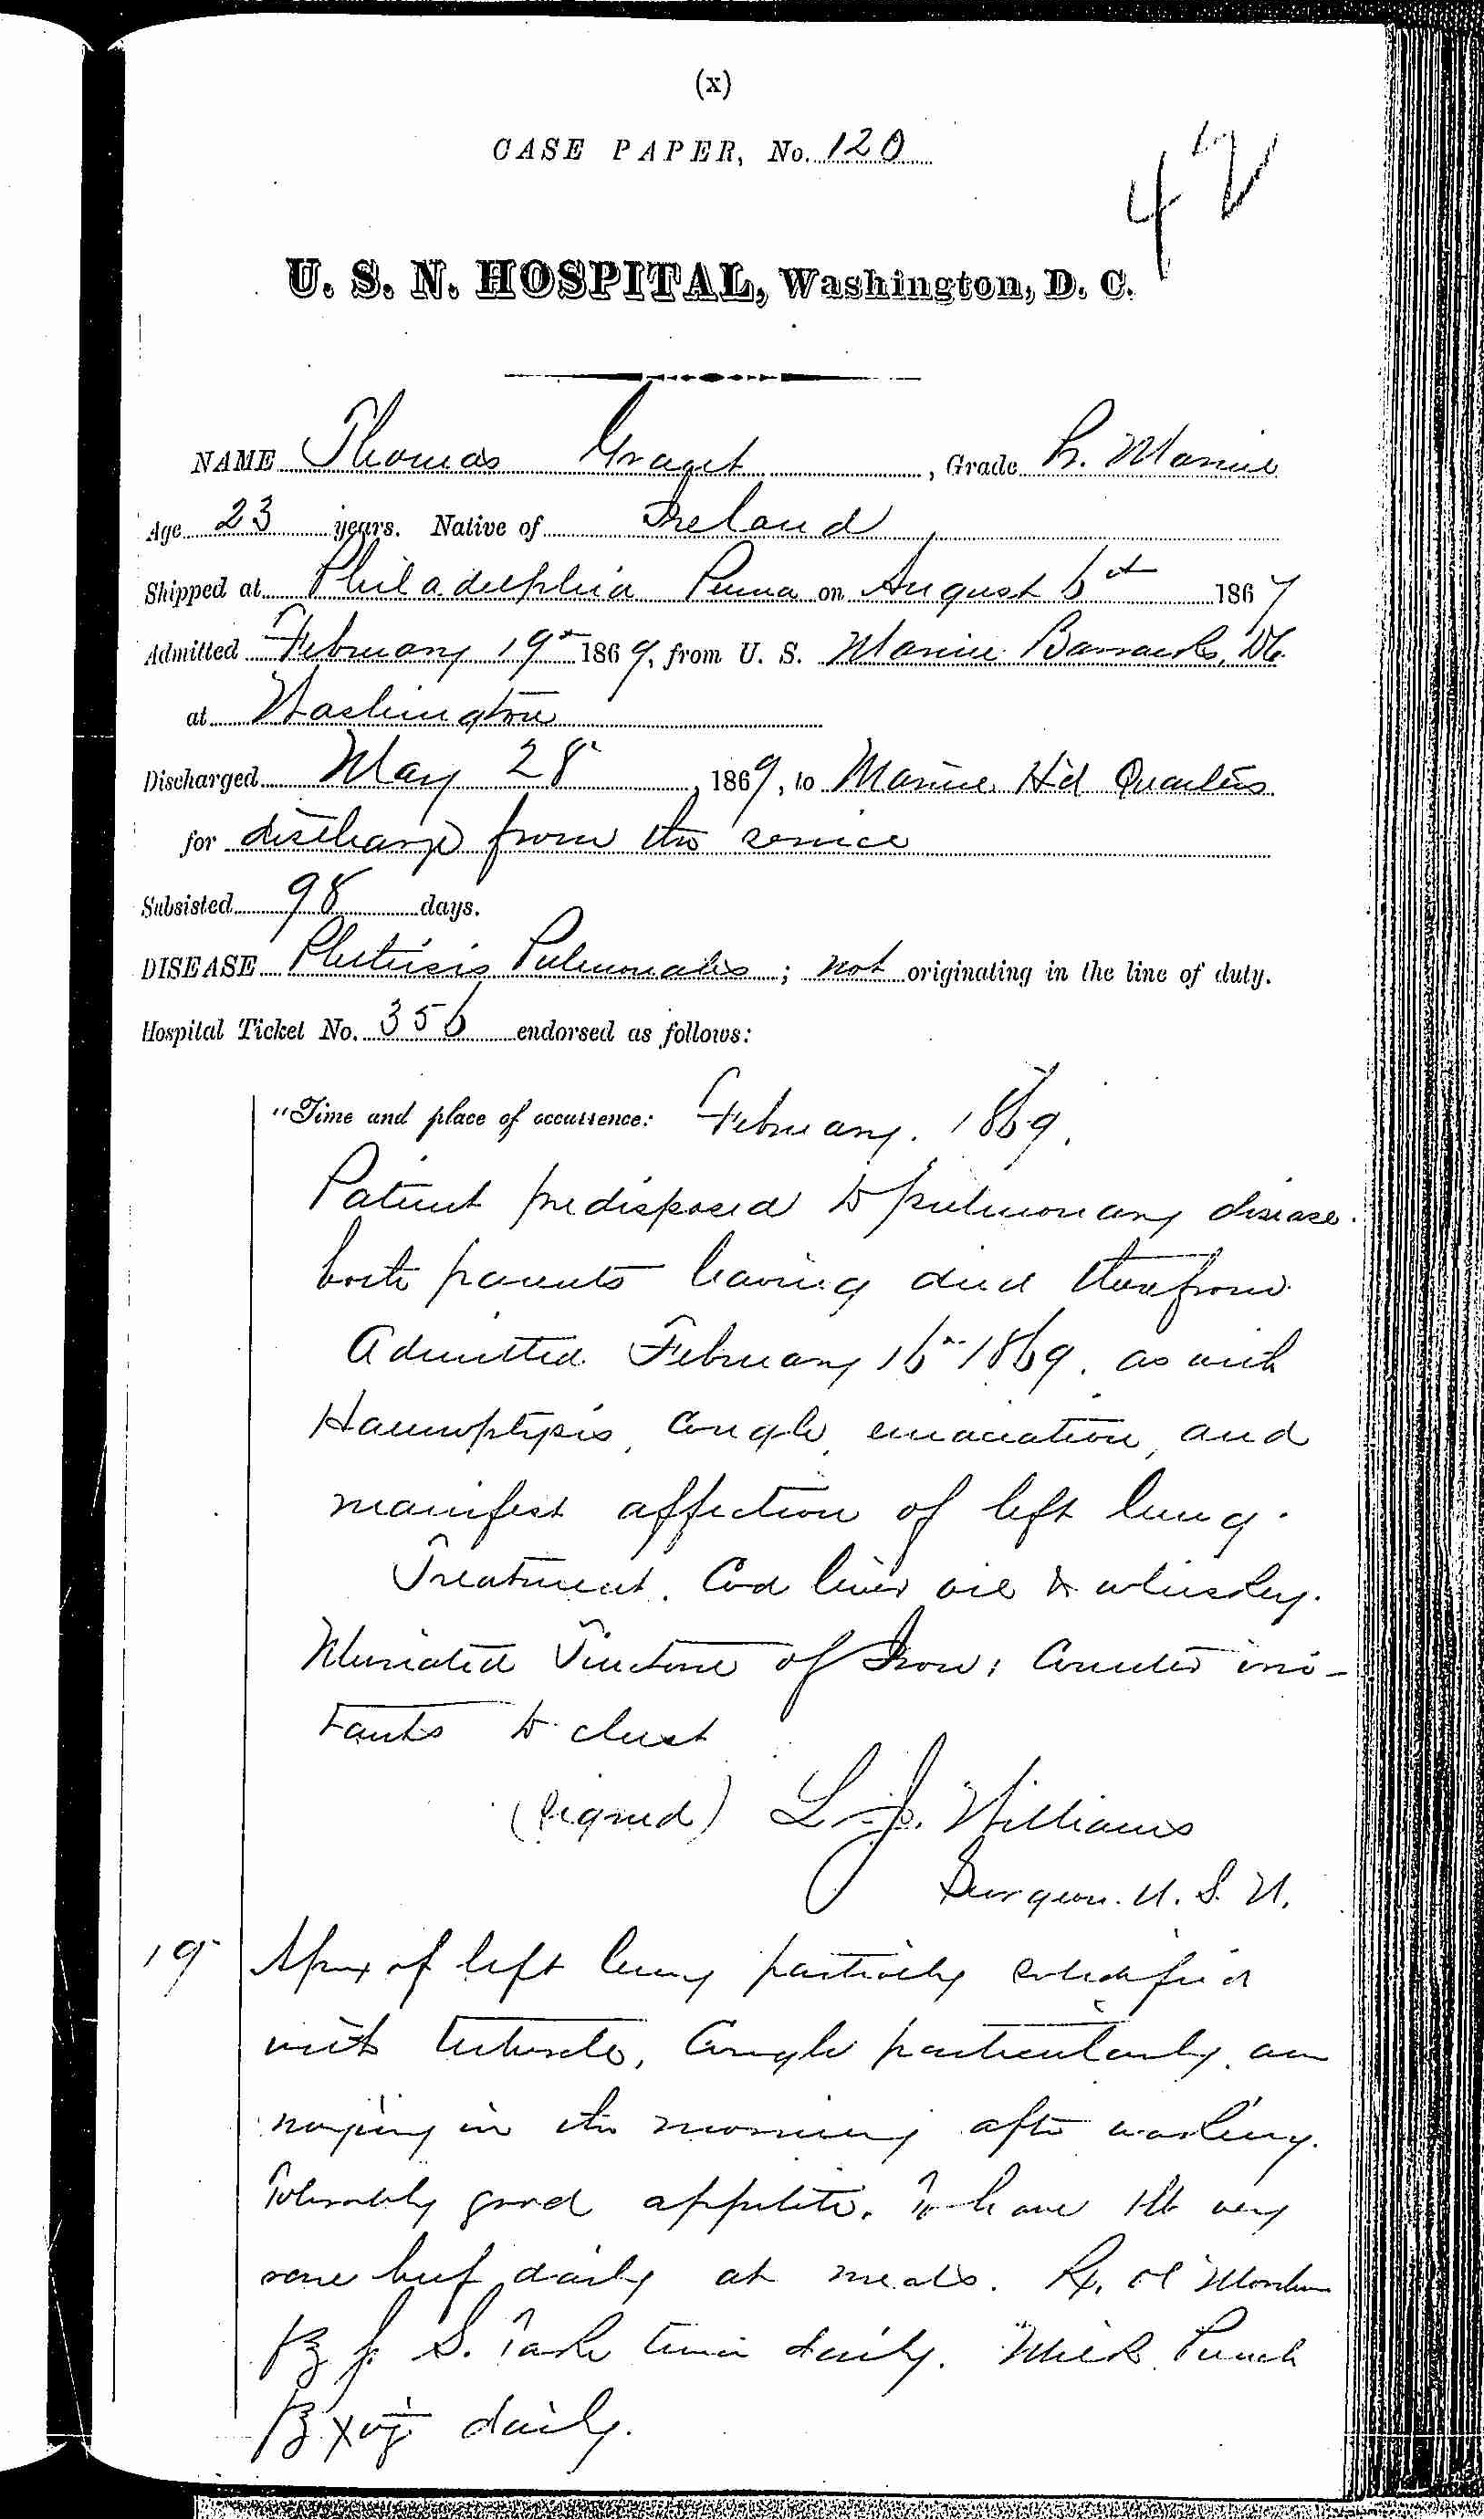 Entry for Thomas Grant (page 1 of 4) in the log Hospital Tickets and Case Papers - Naval Hospital - Washington, D.C. - 1868-69